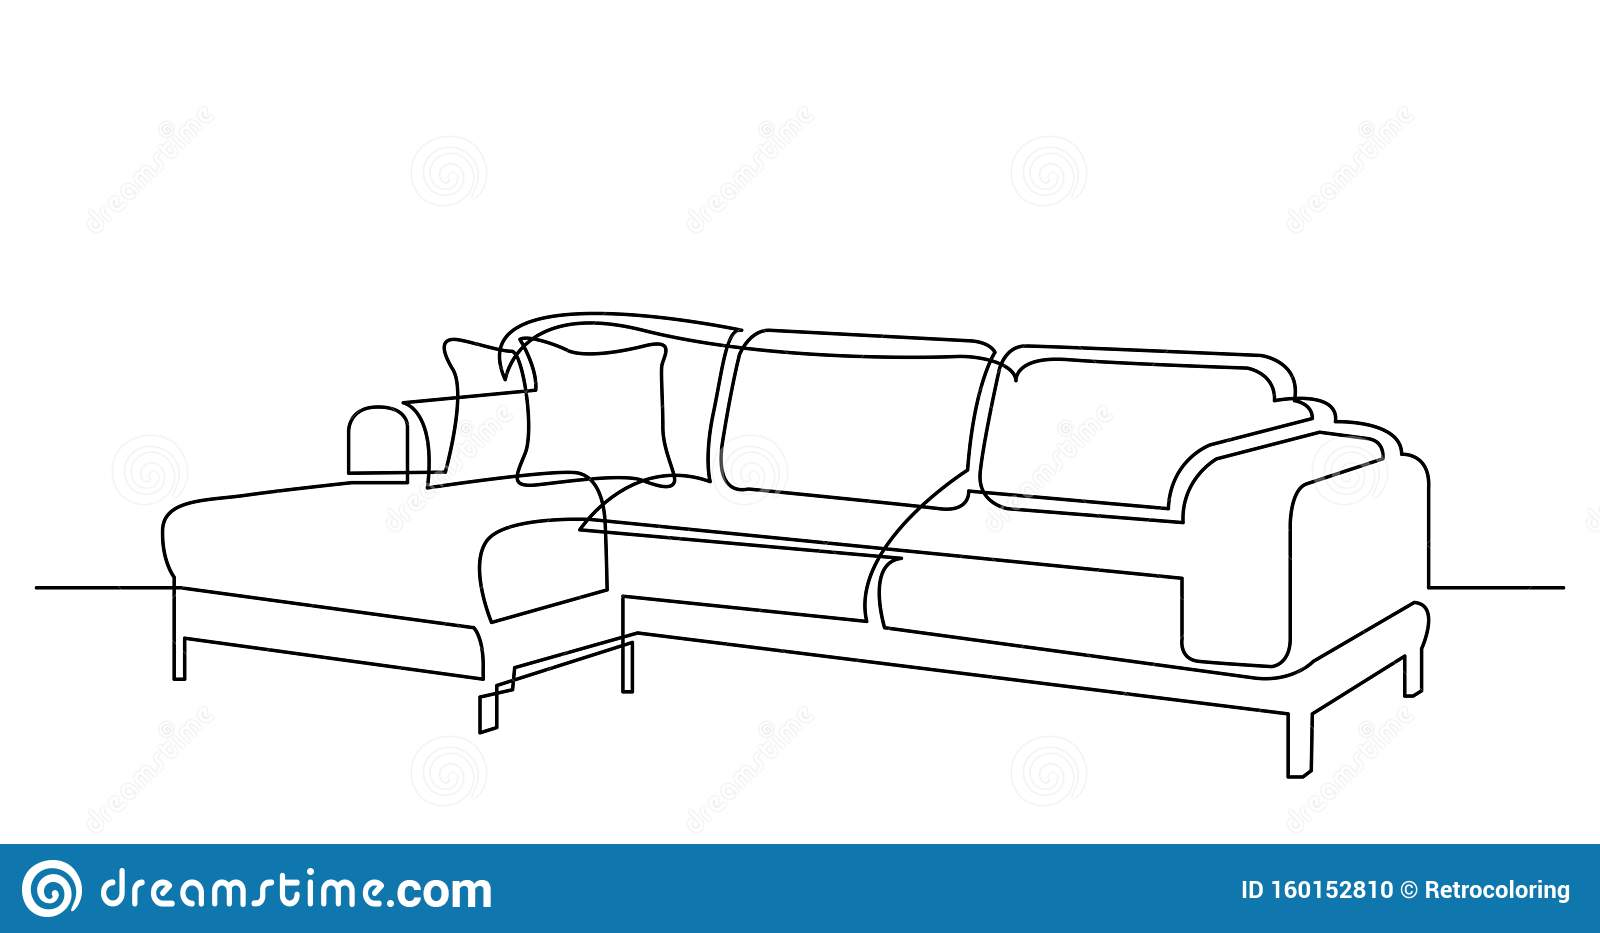 Continuous Line Drawing Of Large Modern Sectional Sofa With Cushions Stock Vector Illustration Of Background Linear 160152810